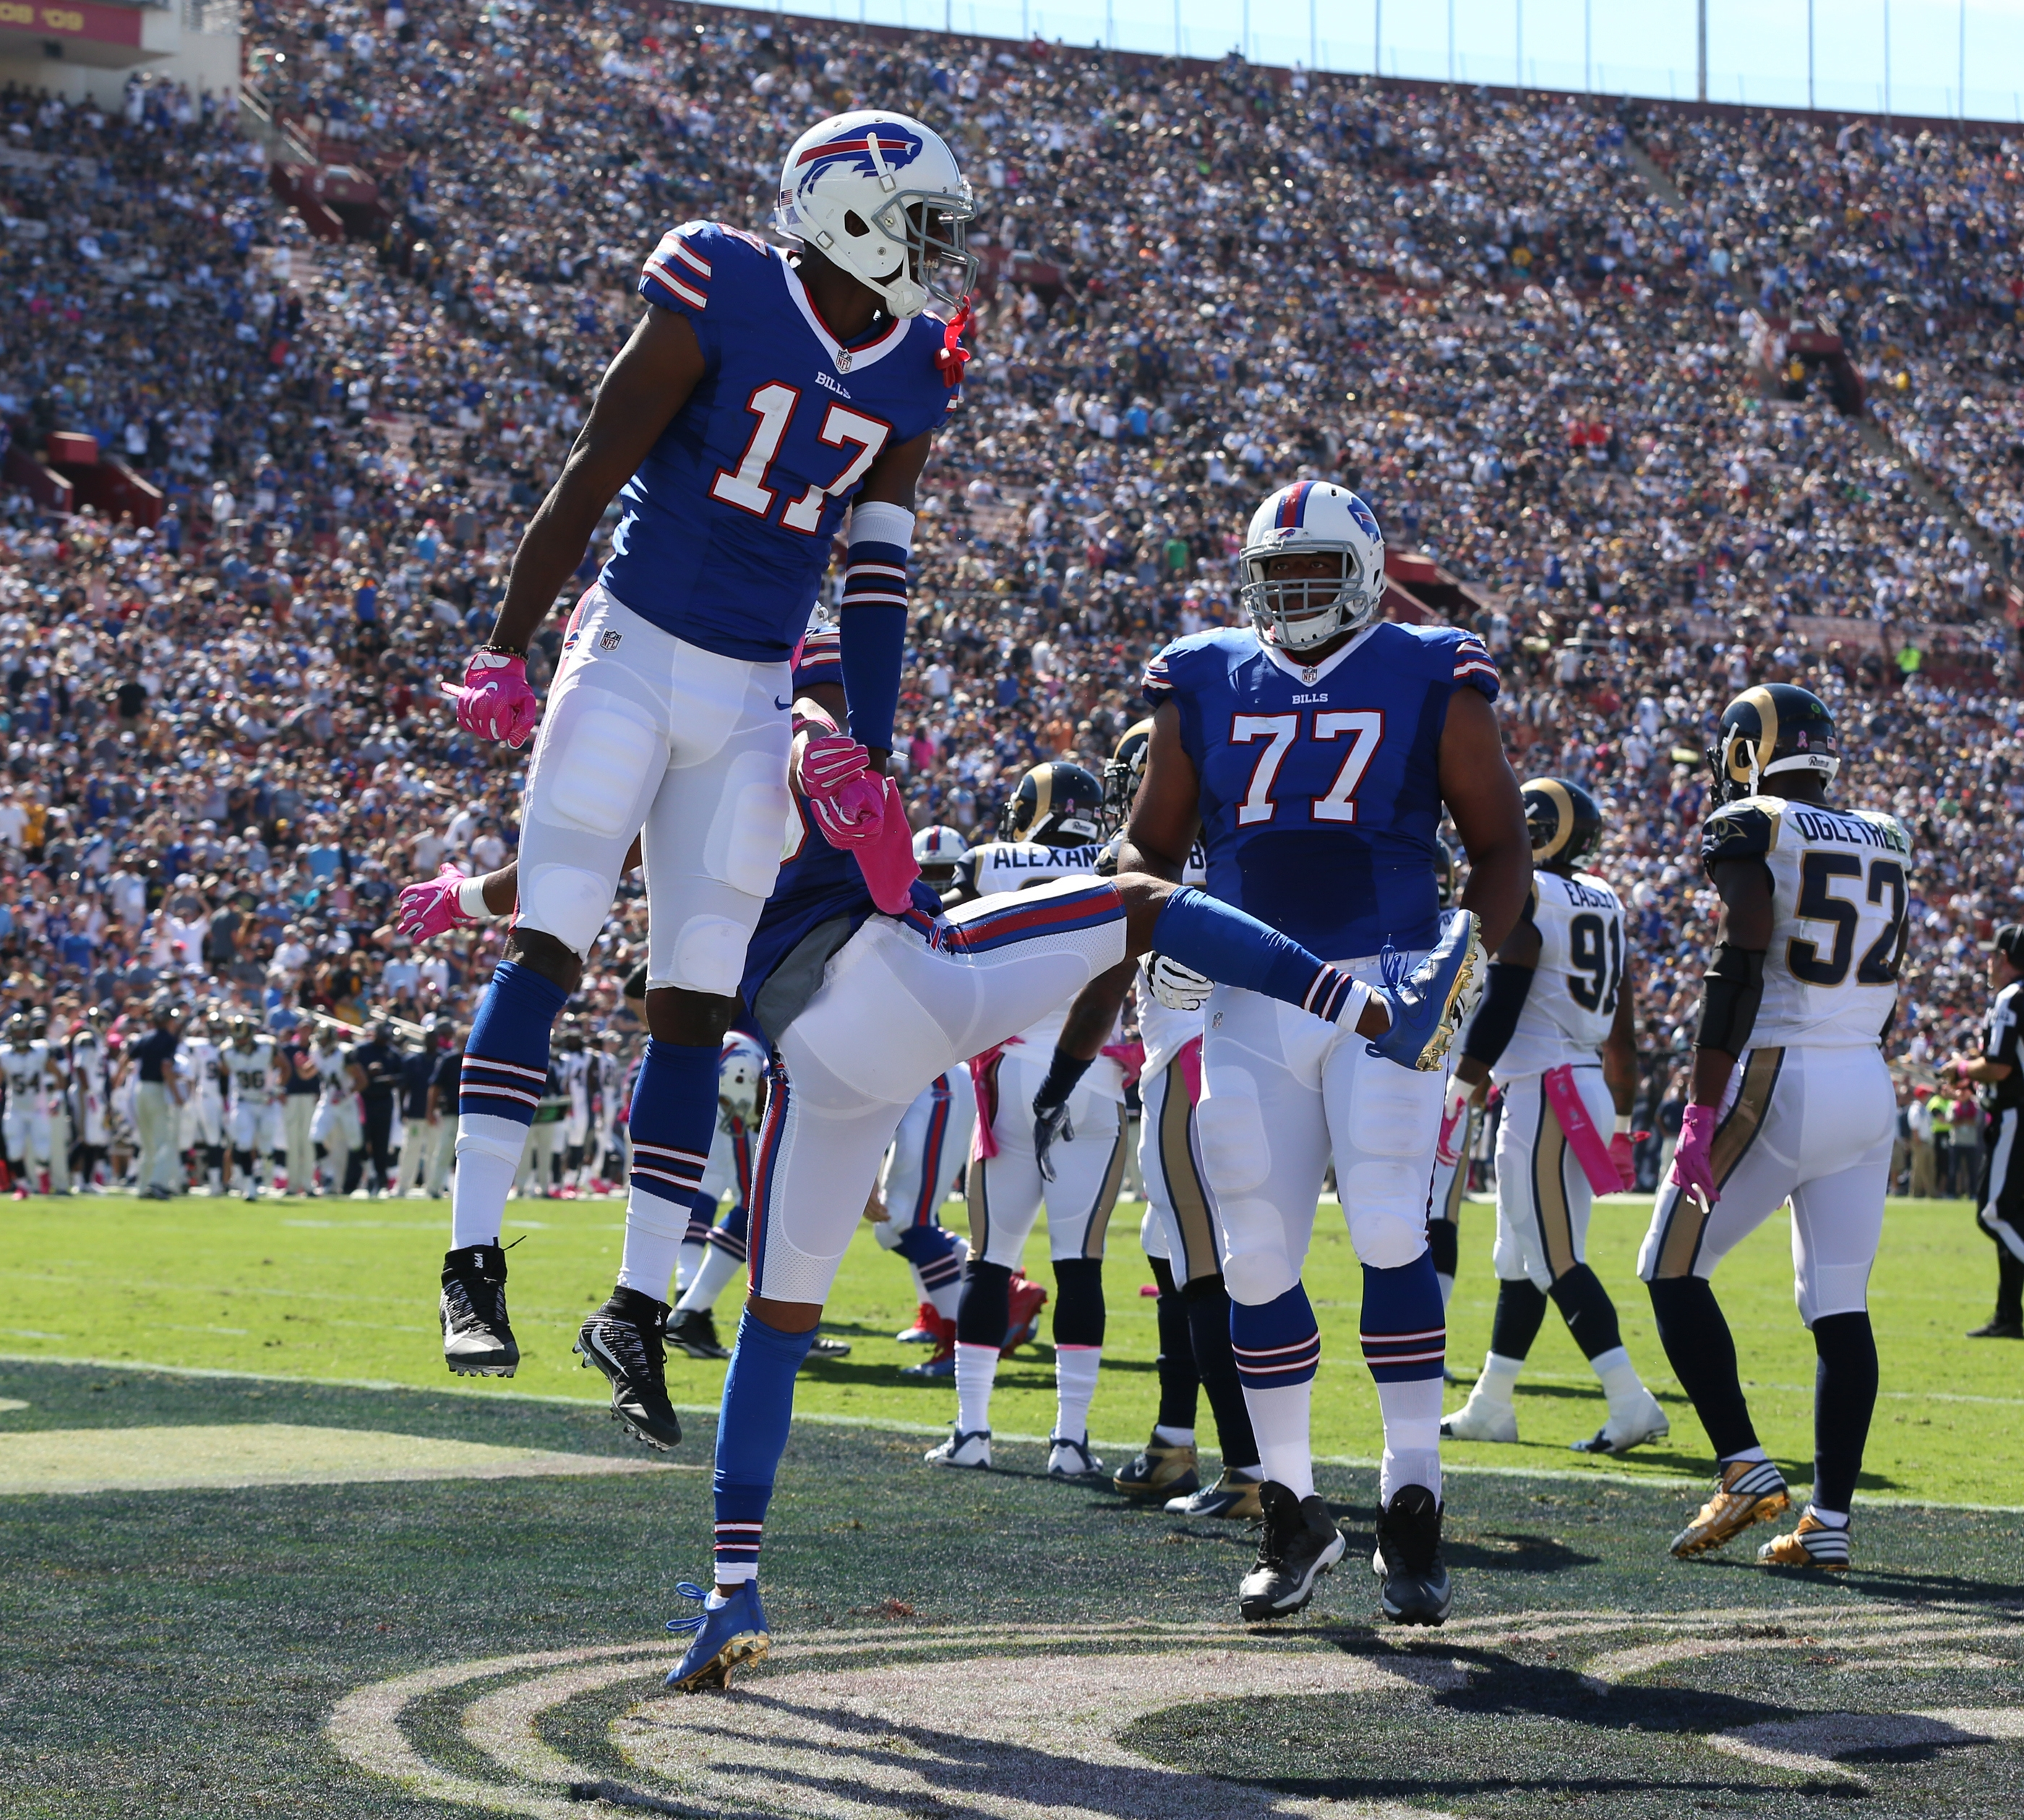 Buffalo Bills wide receiver Justin Hunter (17) scores a touchdown in the first quarter in Los Angeles Memorial Colliseum on Sunday, Oct. 9, 2016.  (James P. McCoy/Buffalo News)